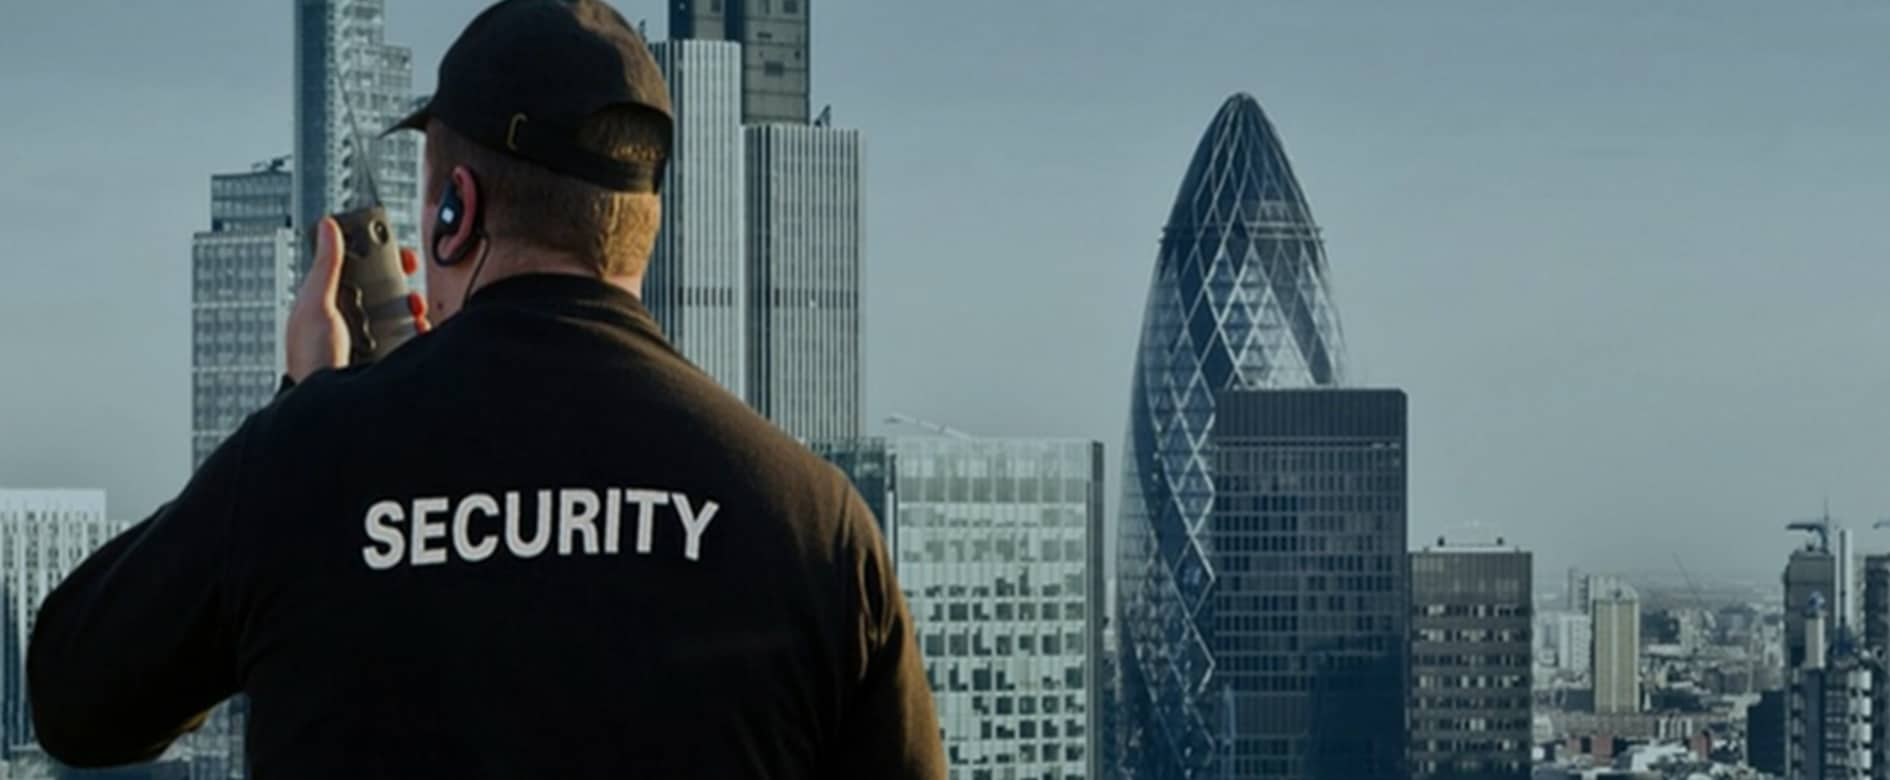 Five Strong Qualities That Make Or Break Security Officers